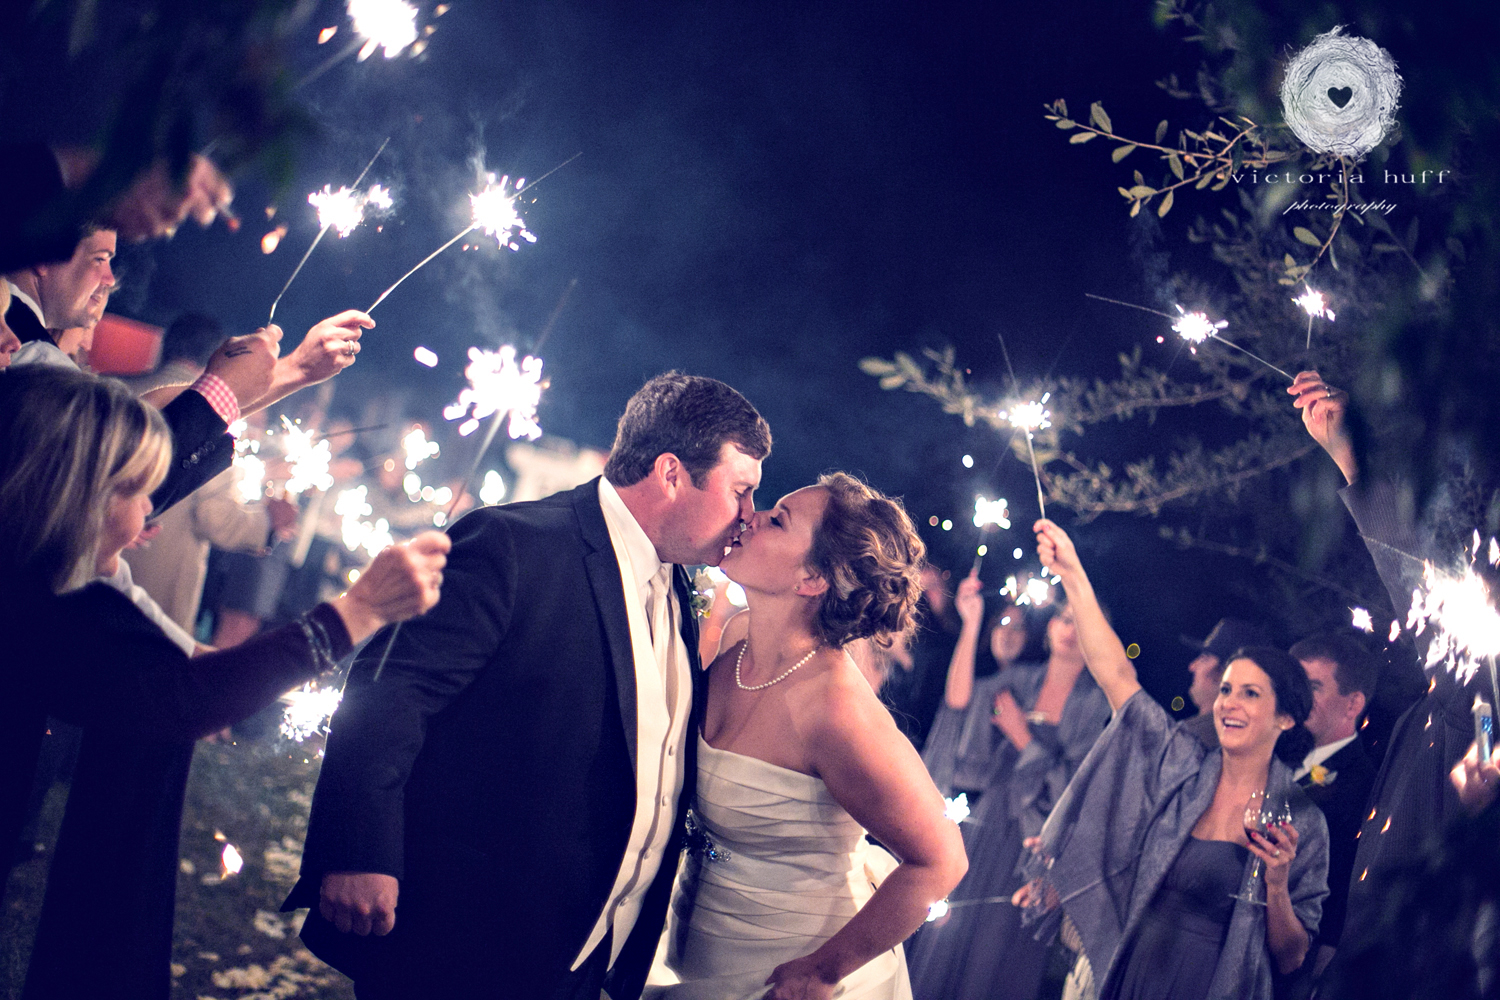 Wedding-Photography-Emily-Phillips-The-Corry-House-Union-Point-Georgia-Vintage-Wedding-sparklers-6.jpg